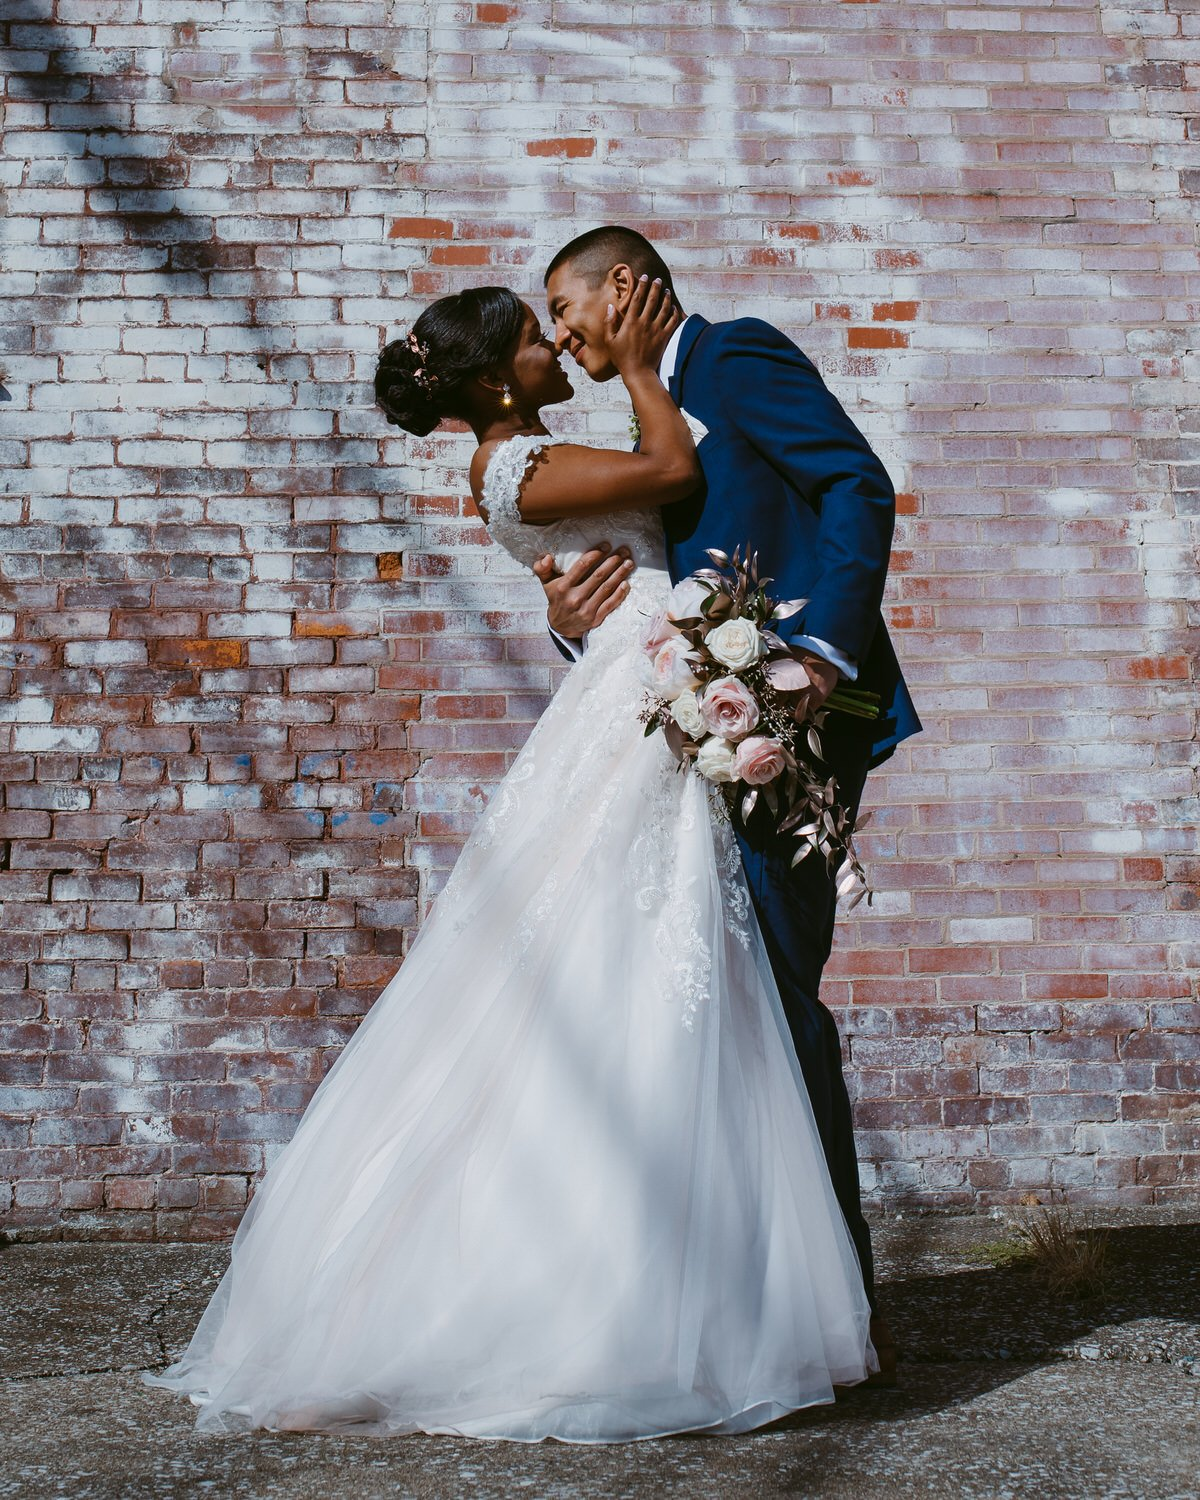 groom holding wedding bouquet romantically dips bride against a brick city backdrop in Versailles Ky near The Galerie Venue